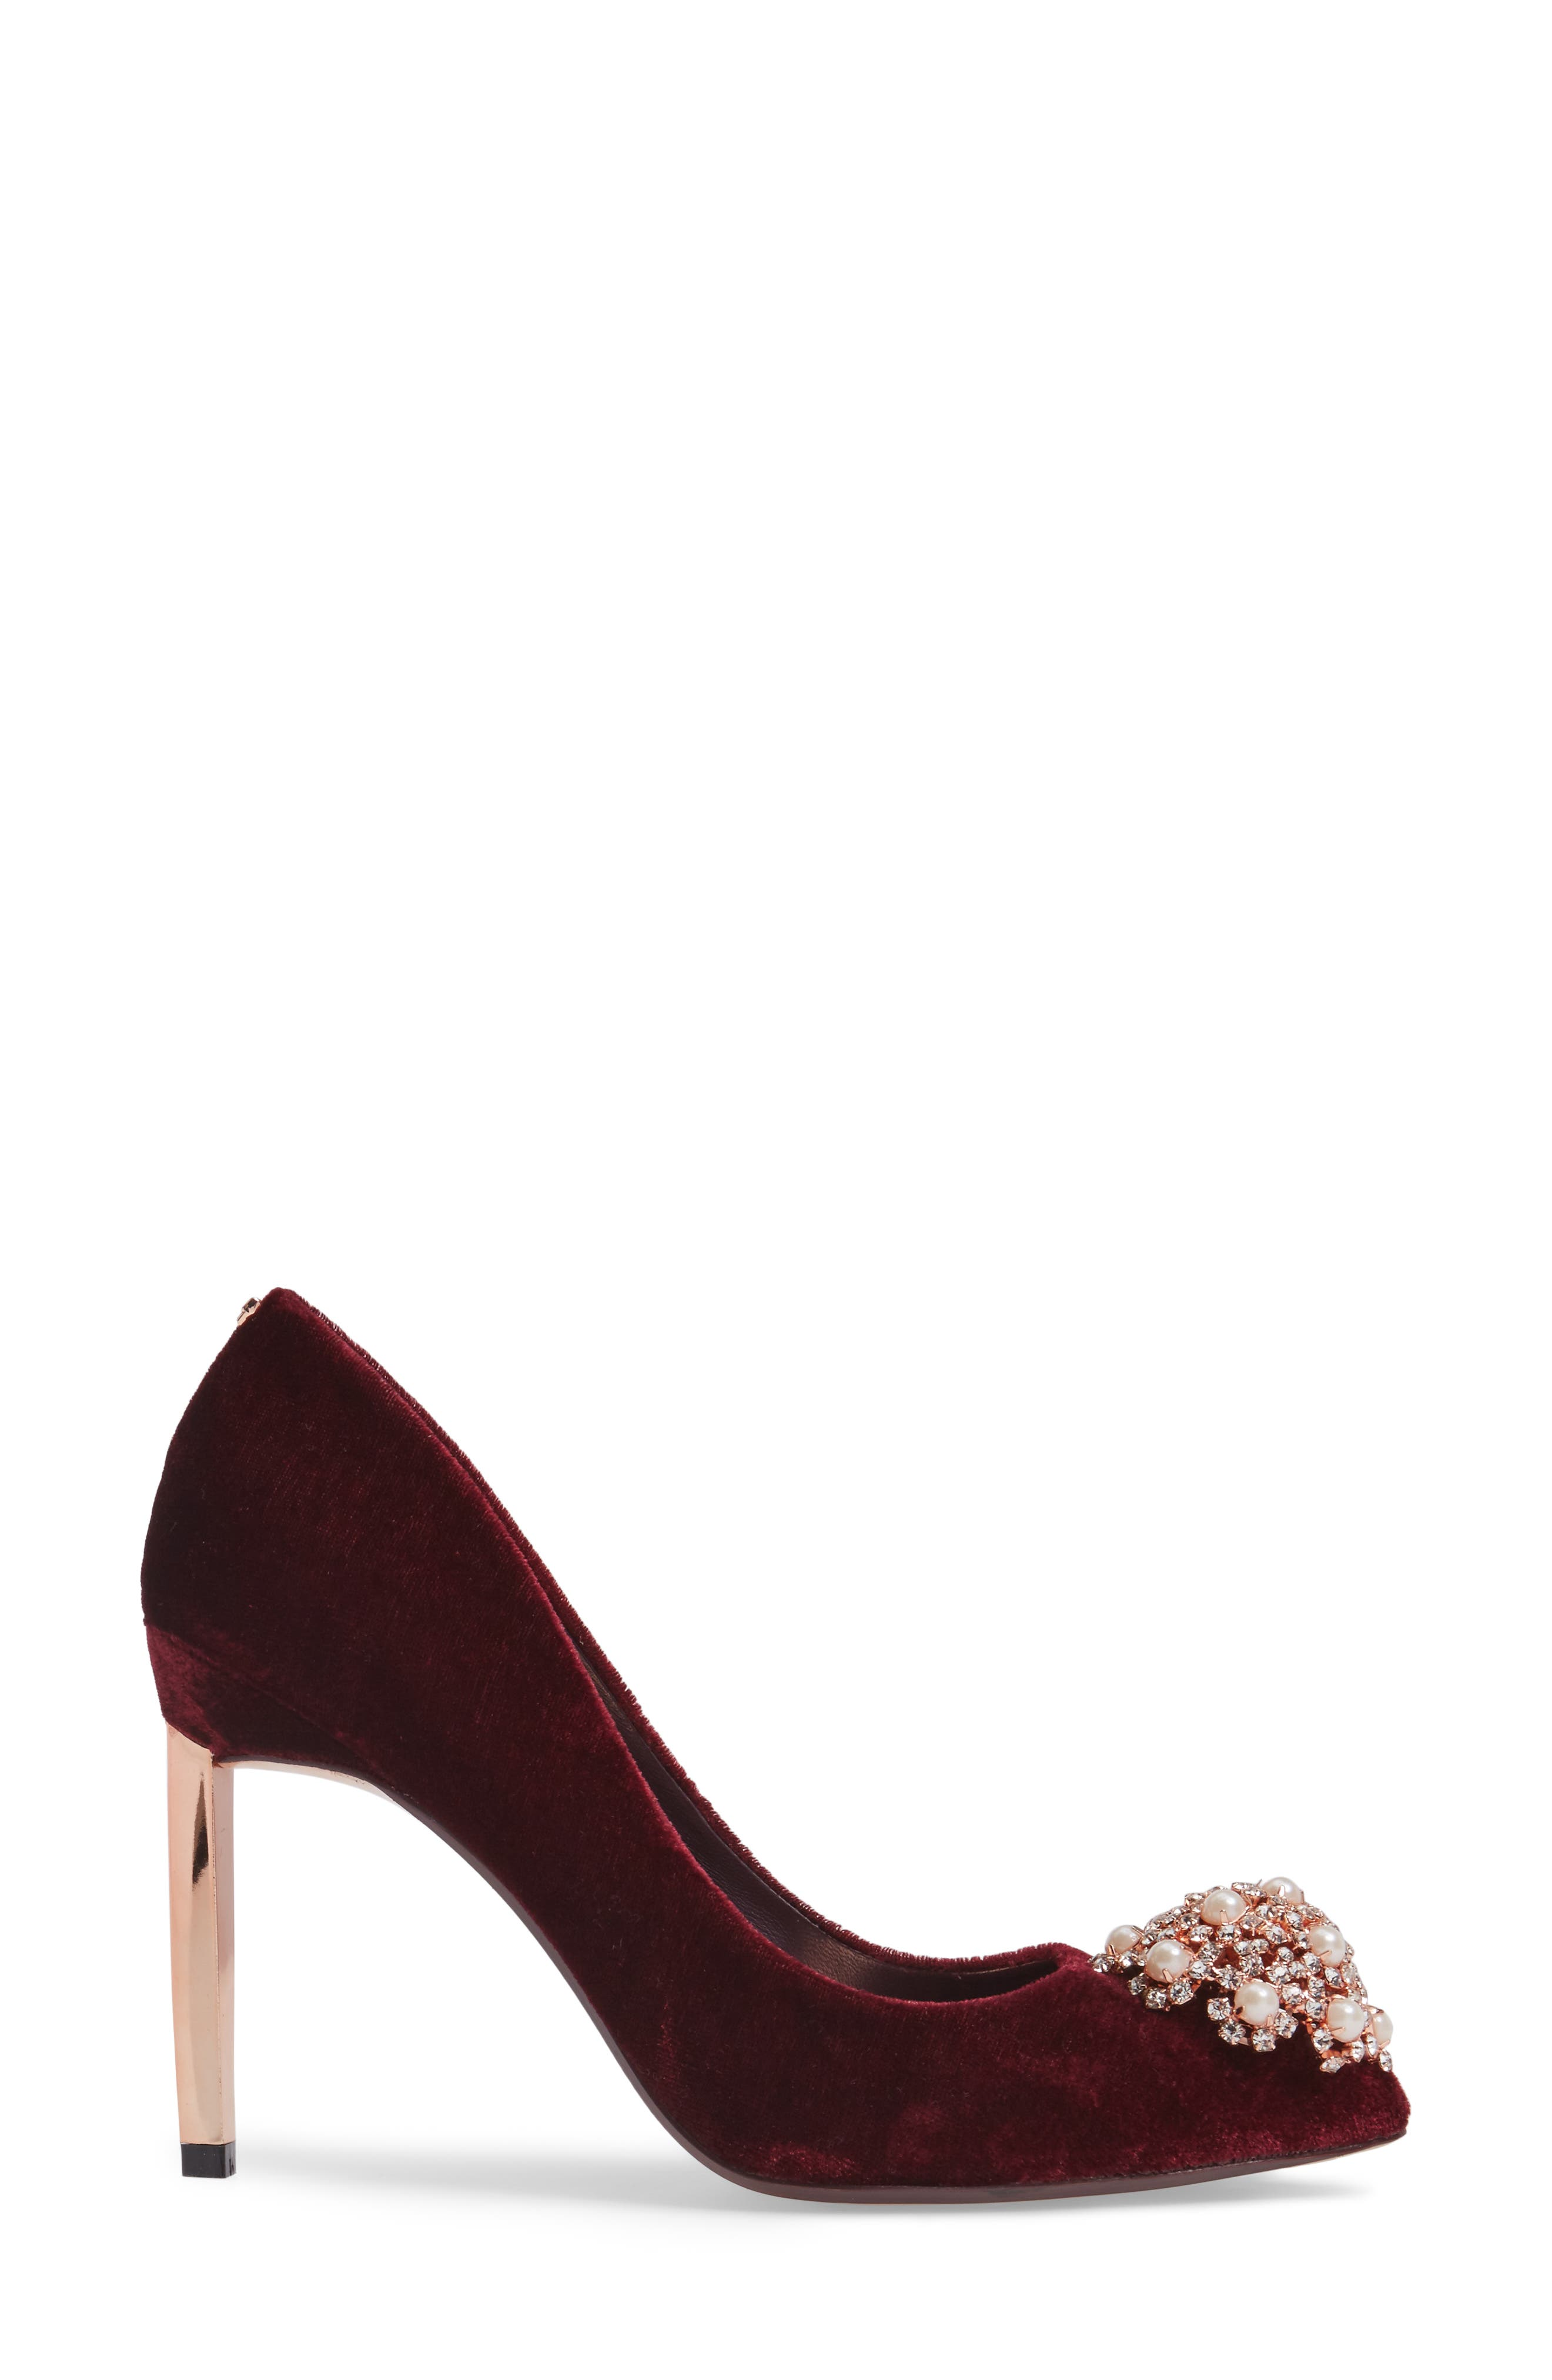 'Peetch' Pointy Toe Pump,                             Alternate thumbnail 42, color,